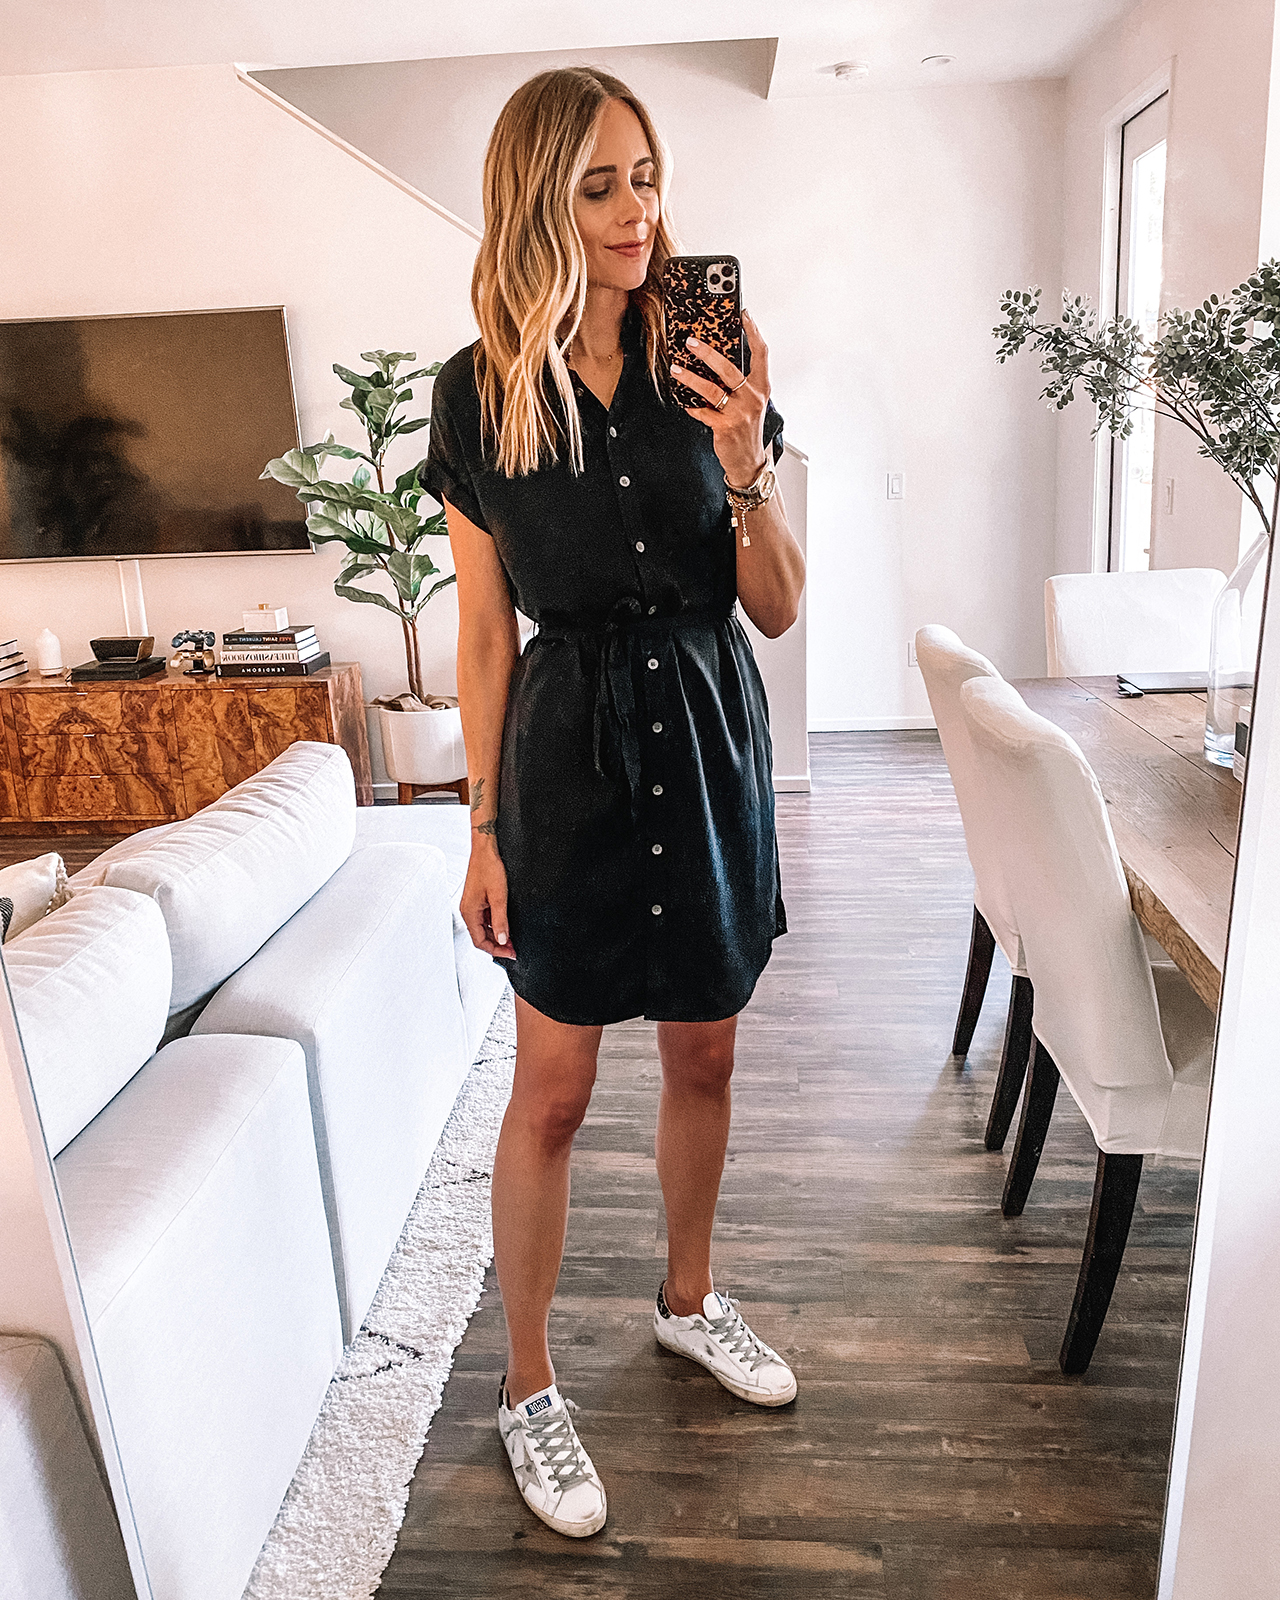 Fashion Jackson Wearing Amazon Daily Ritual Black Shirtdress Golden Goose Sneakers